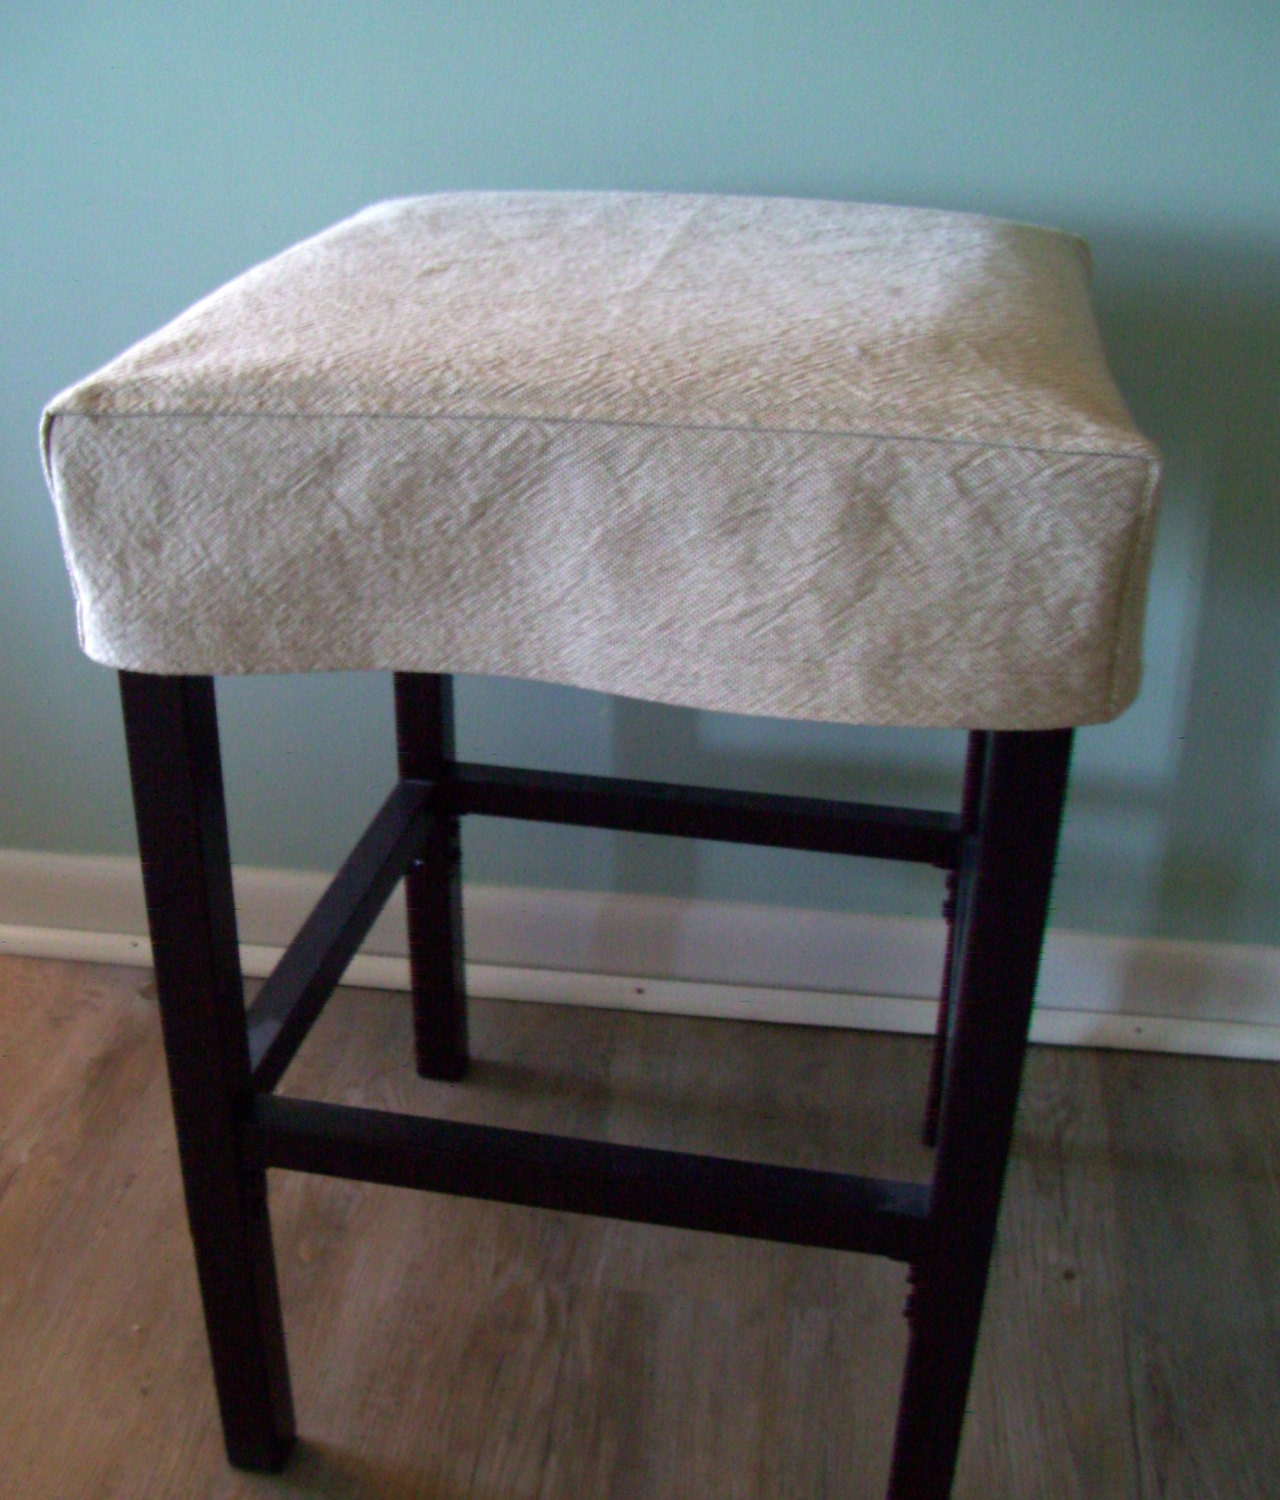 Square Bar Stool Slipcover Tan Topstitched Barstool Cover